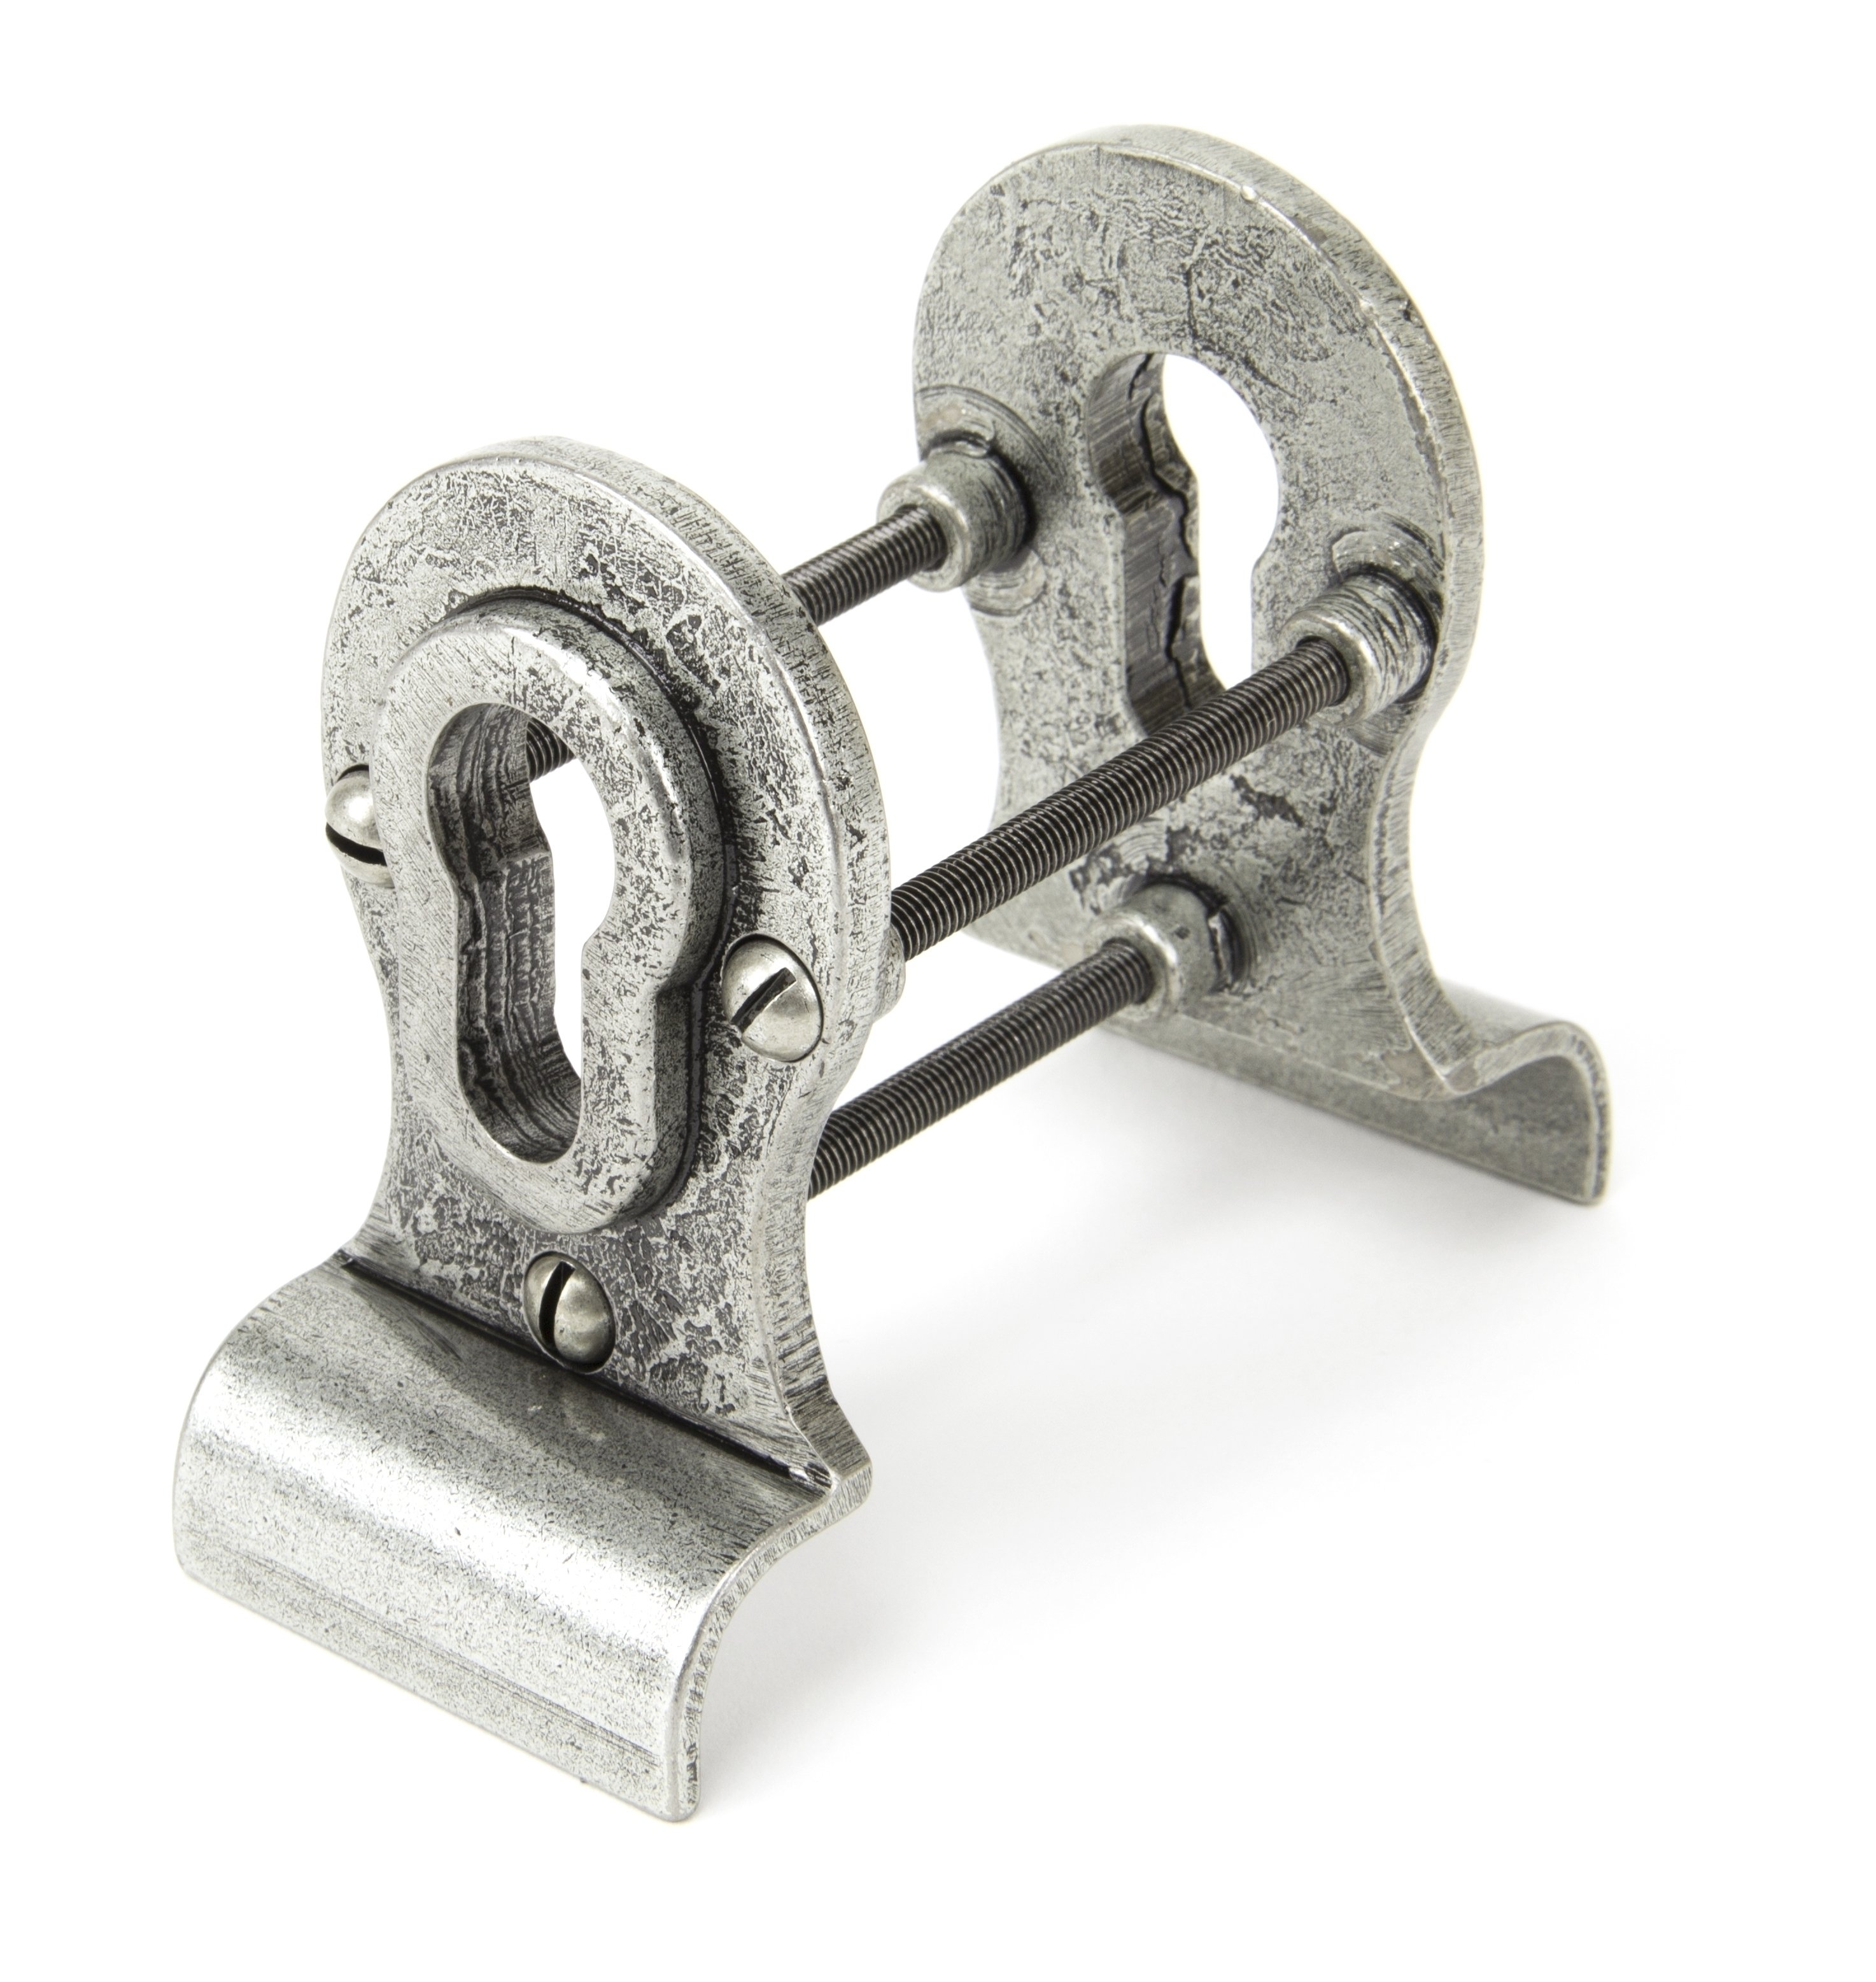 Pewter Euro Door Pull - Back-to-back Fixing image